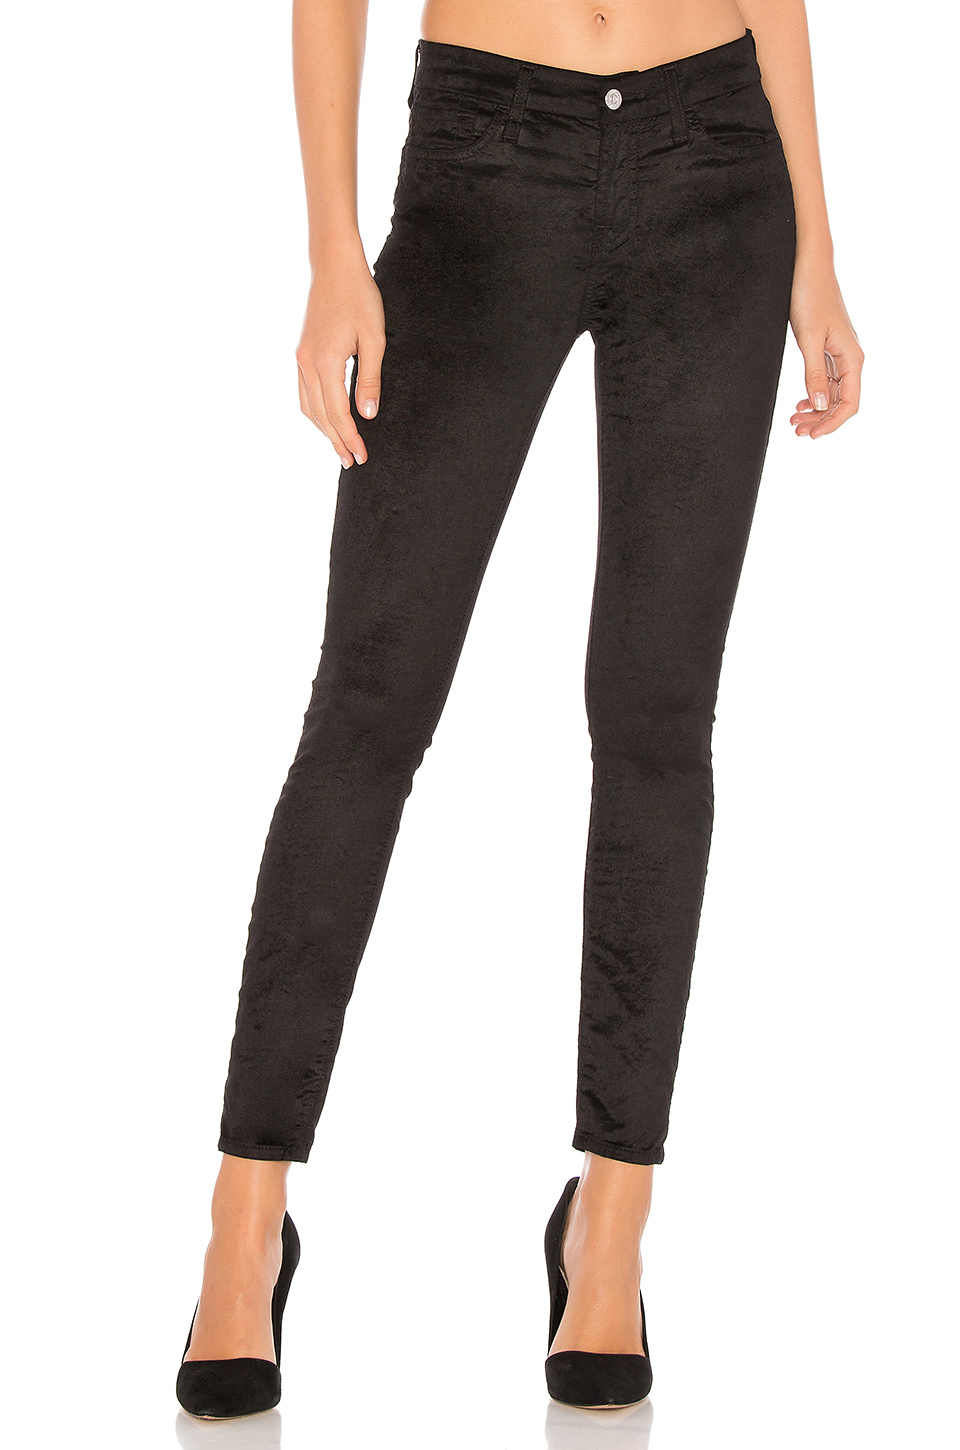 7 For All Mankind The Velvet Ankle Skinny in Black